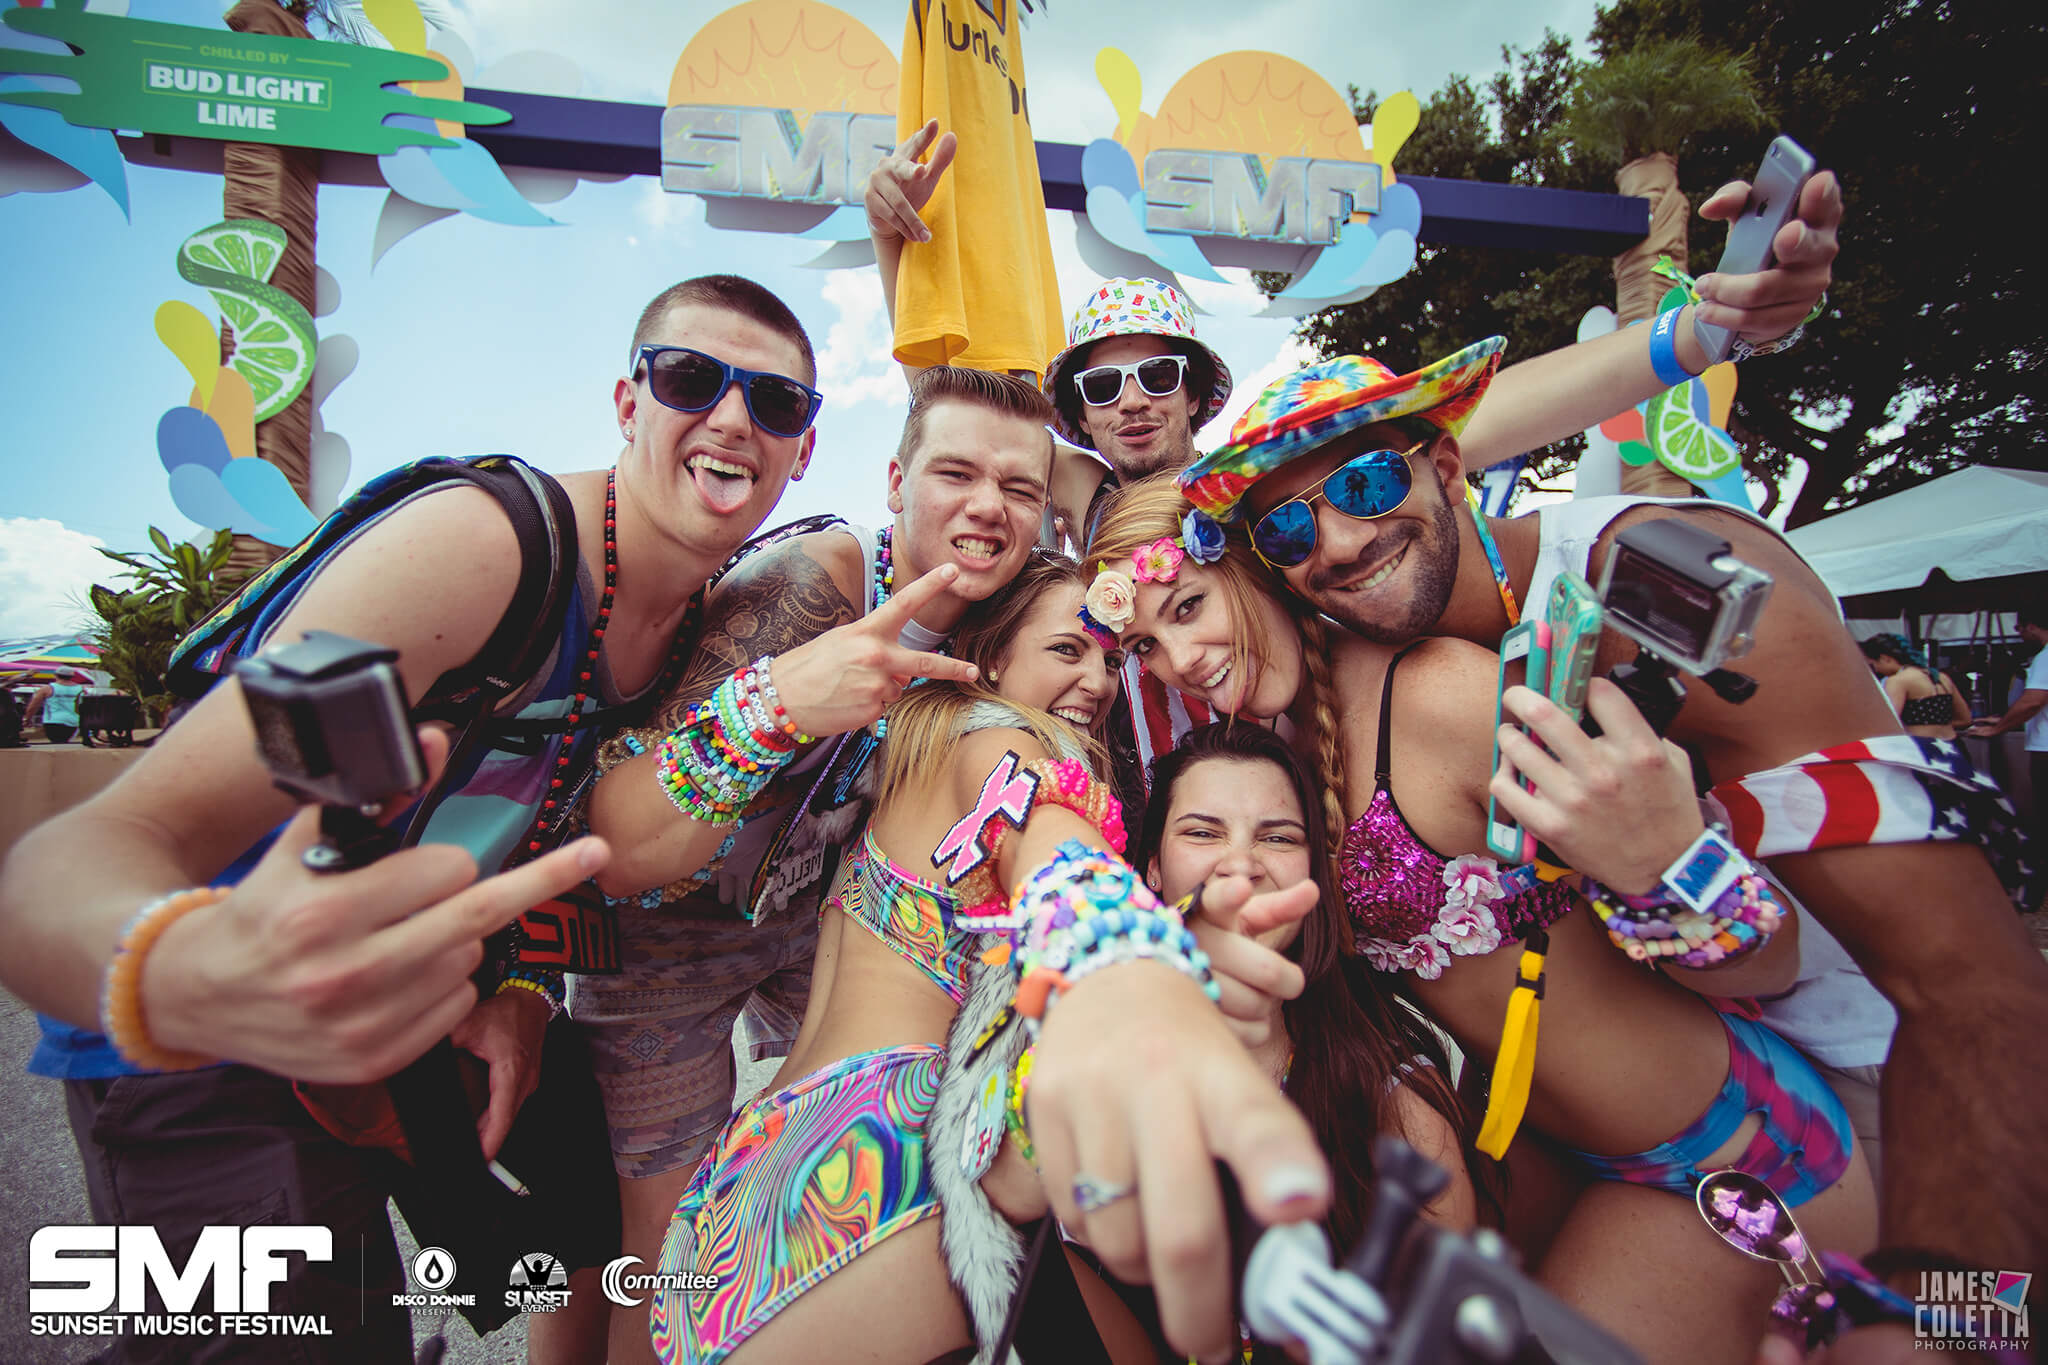 group of friends squad out at sunset music festival